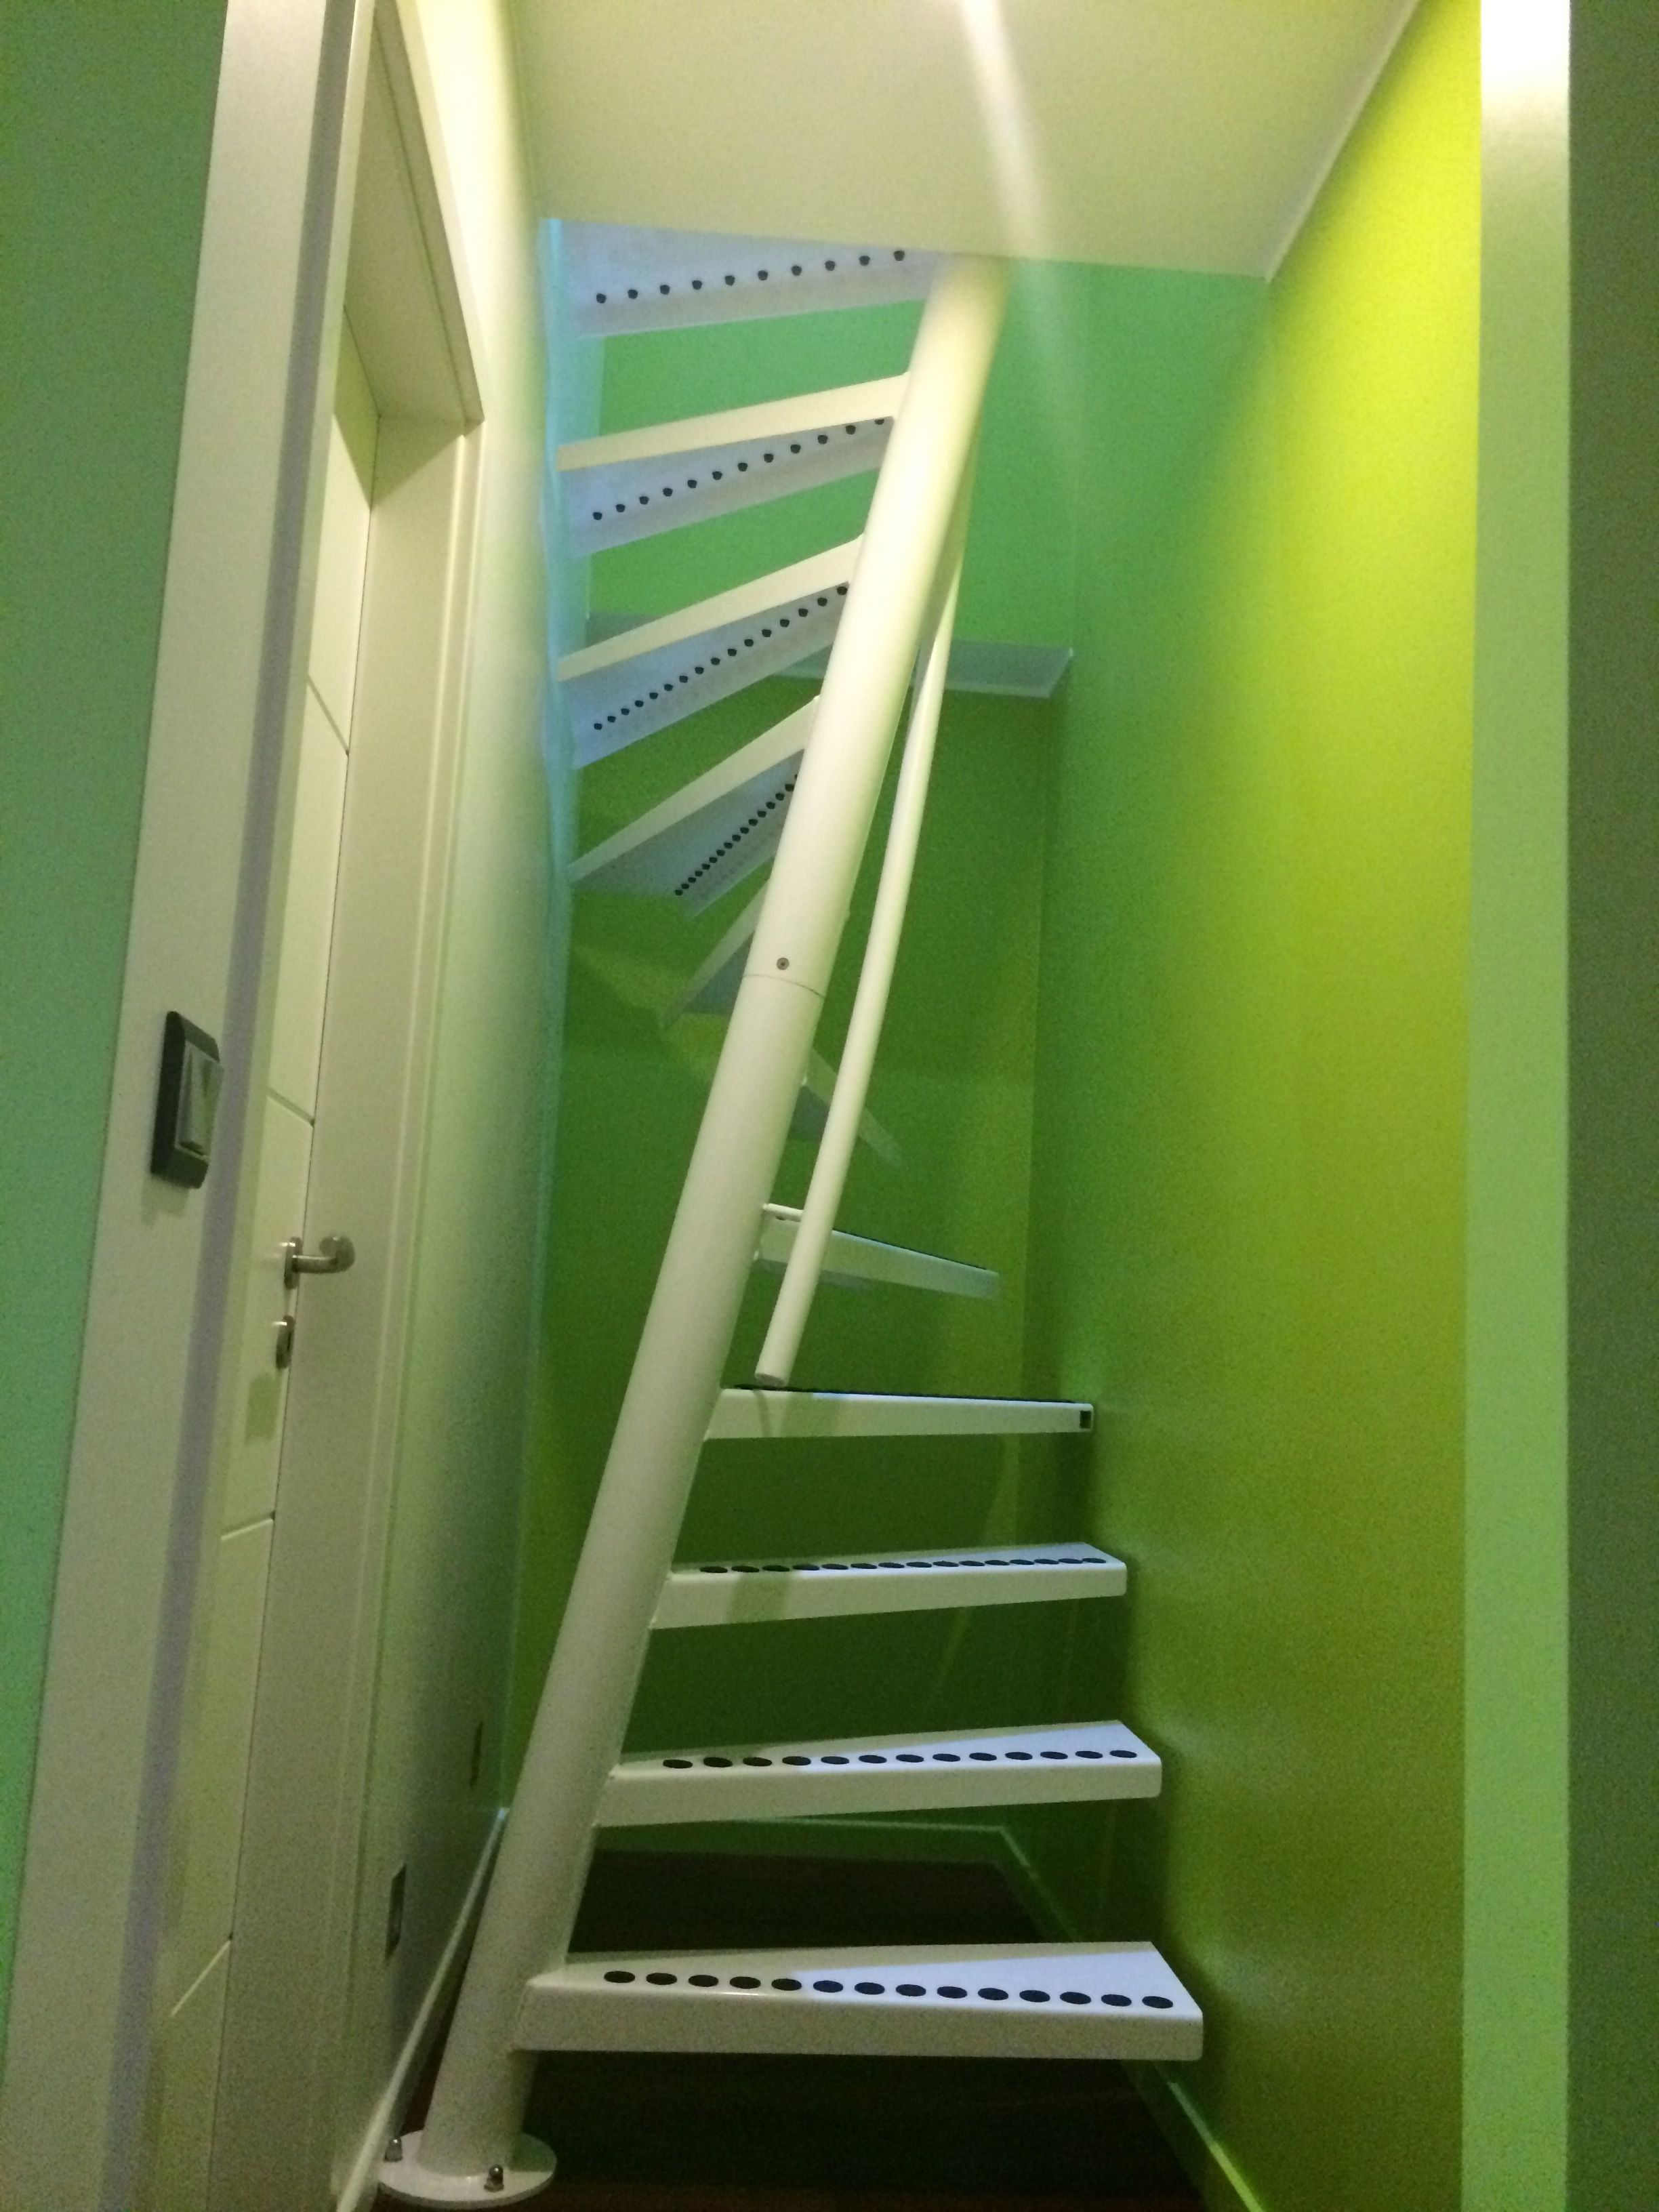 1m2 By Eestairs In A Narrow Space Of 1 05m Width Stairs